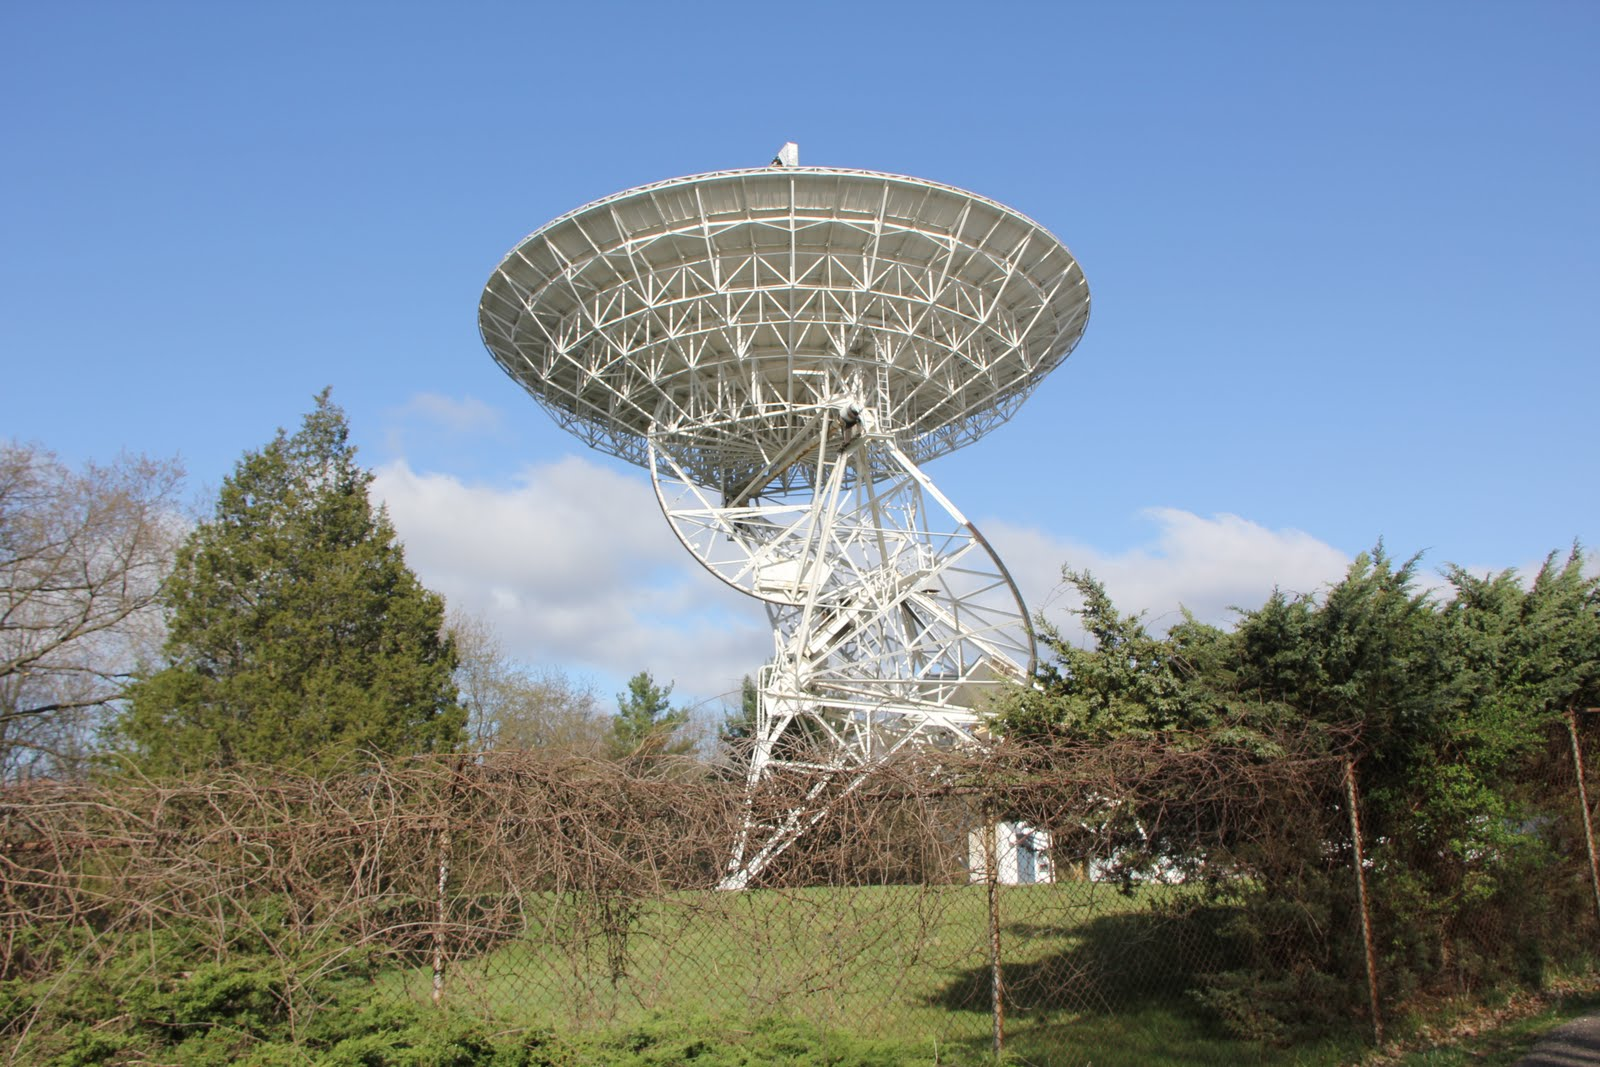 The Peach Mountain 26 m dish